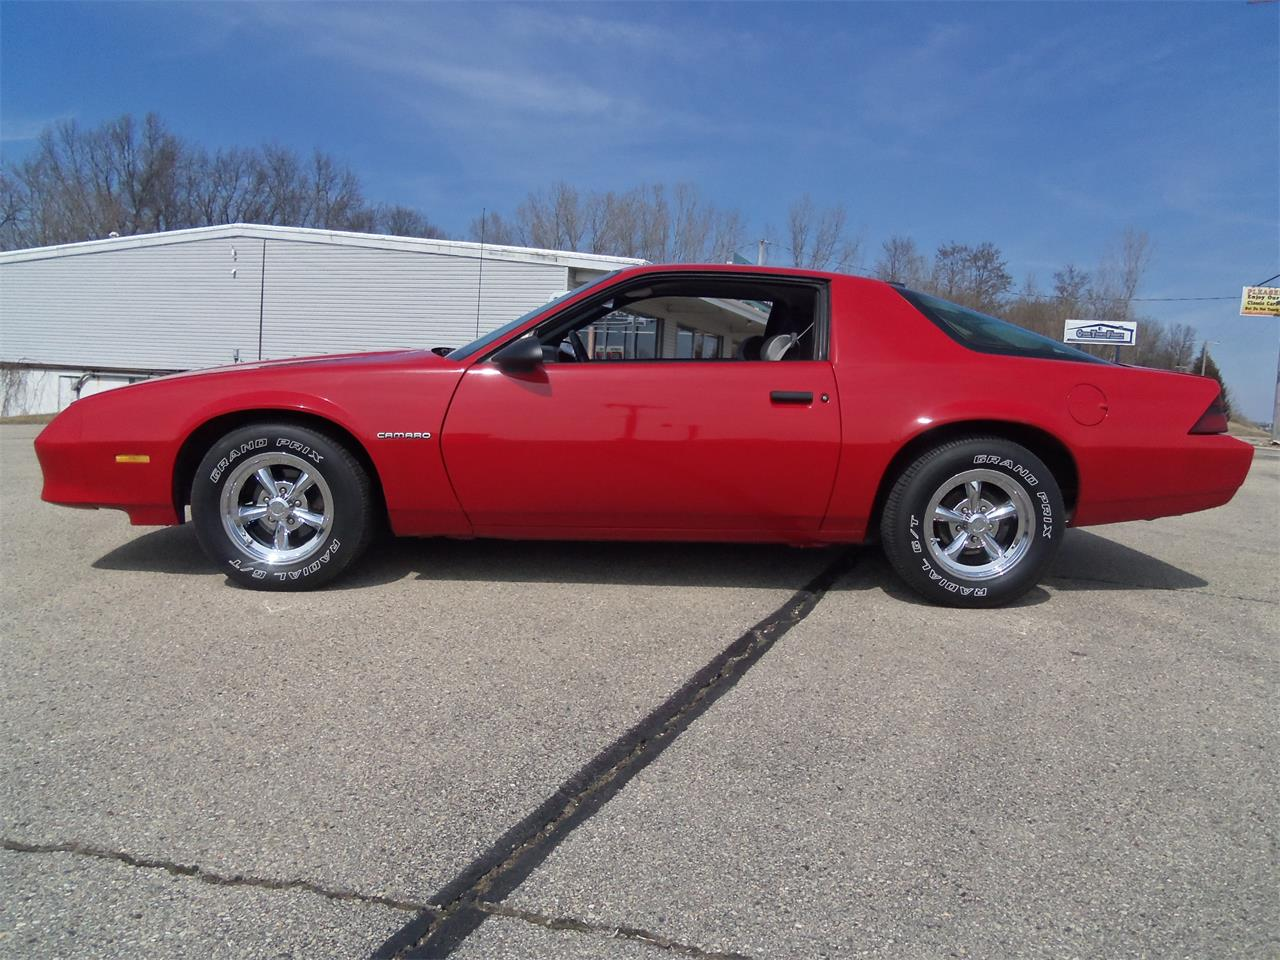 Large Picture of '87 Chevrolet Camaro located in Wisconsin - $7,495.00 Offered by Top Notch Pre-Owned Vehicles - N4OS